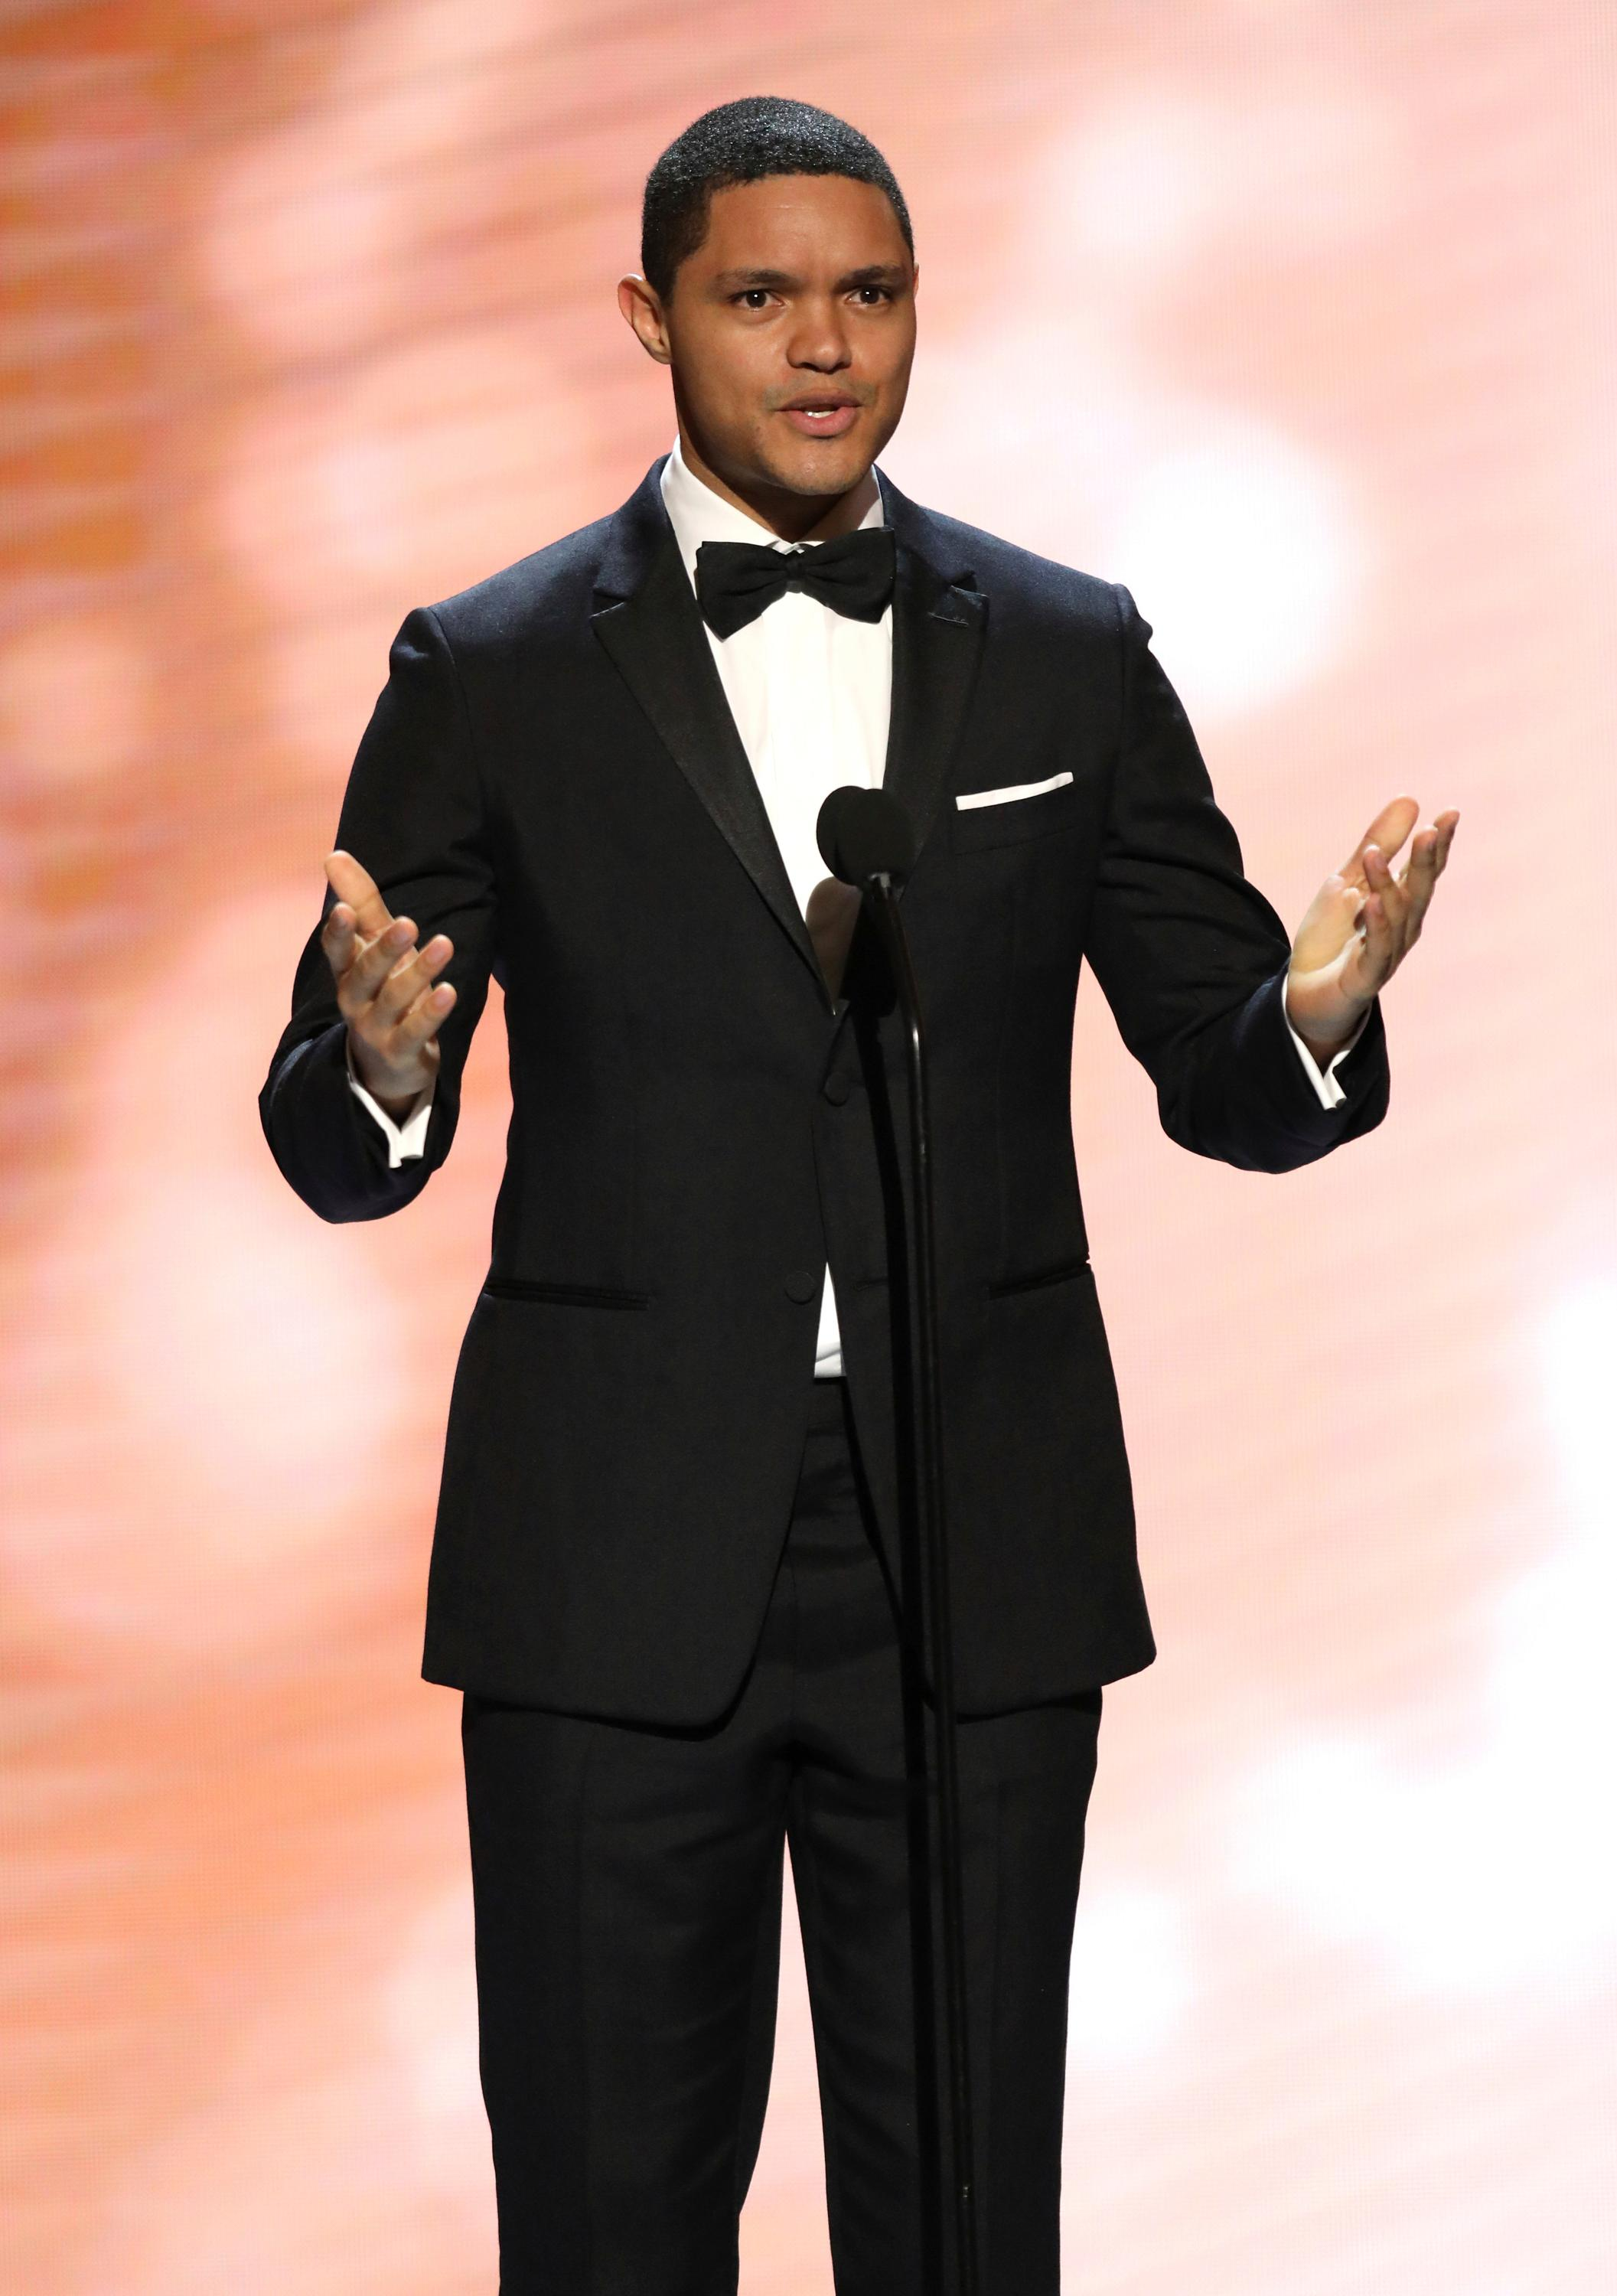 FILE - In this Feb. 11, 2017, file photo, Trevor Noah presents the award for outstanding actress in a comedy series at the 48th annual NAACP Image Awards at the Pasadena Civic Auditorium in Pasadena, Calif. Late-night comics decried the Las Vegas mass shooting as a confoundingly repetitive American tragedy, with Jimmy Kimmel and Noah lashing out at politicians who oppose gun control. They spoke out on Monday, Oct. 2, the day after the worst shooting in modern U.S. history. (Photo by Matt Sayles/Invision/AP, File)